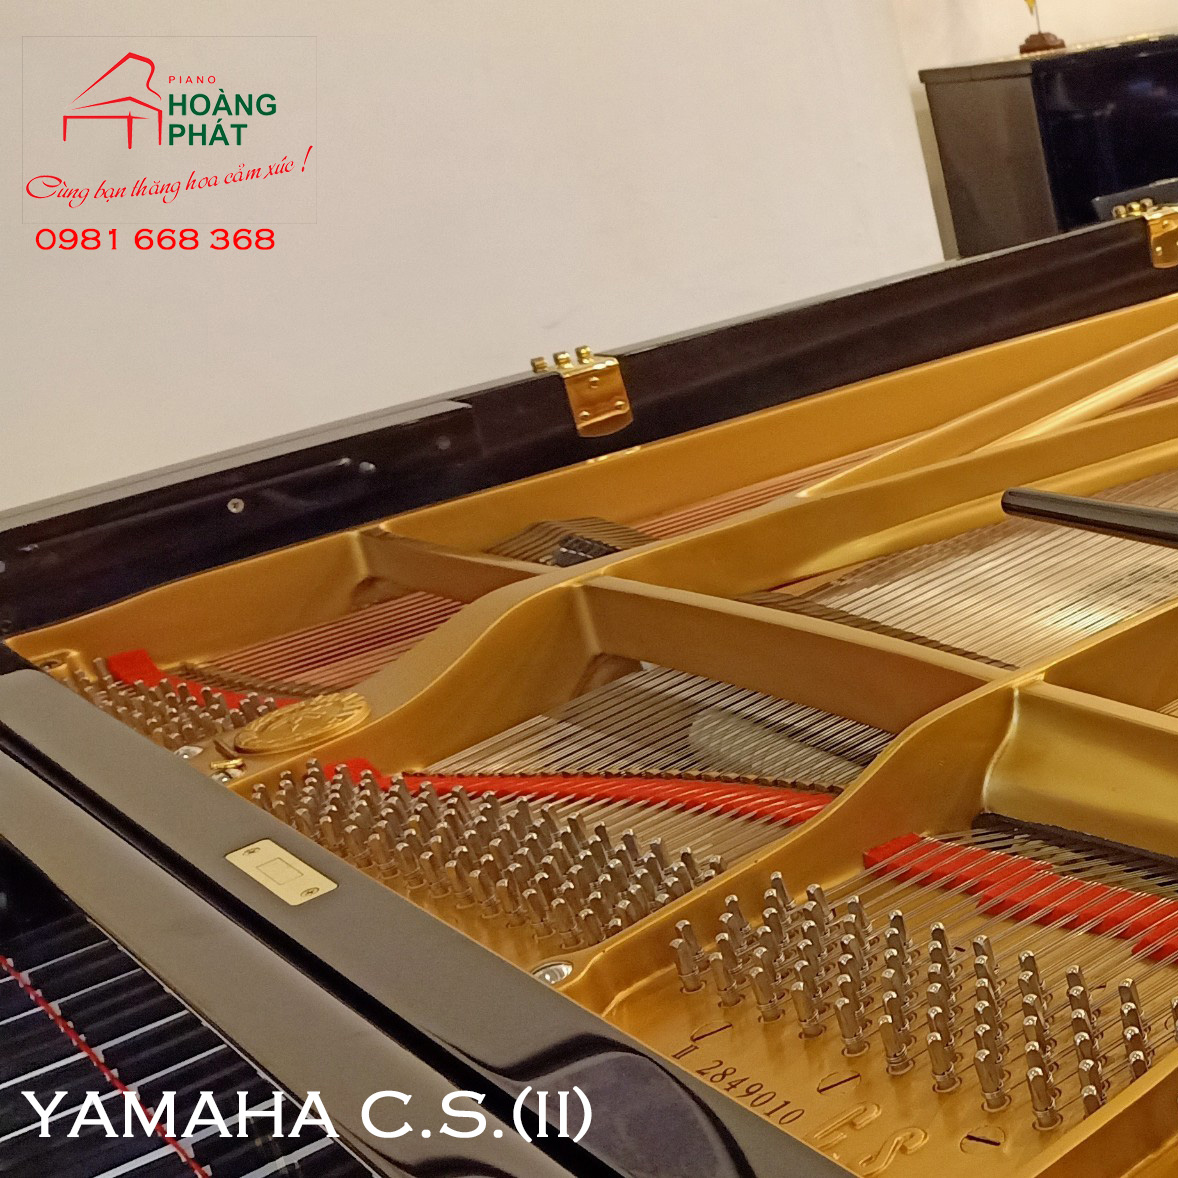 Grand Piano YAMAHA CS (II): Seri 2849010